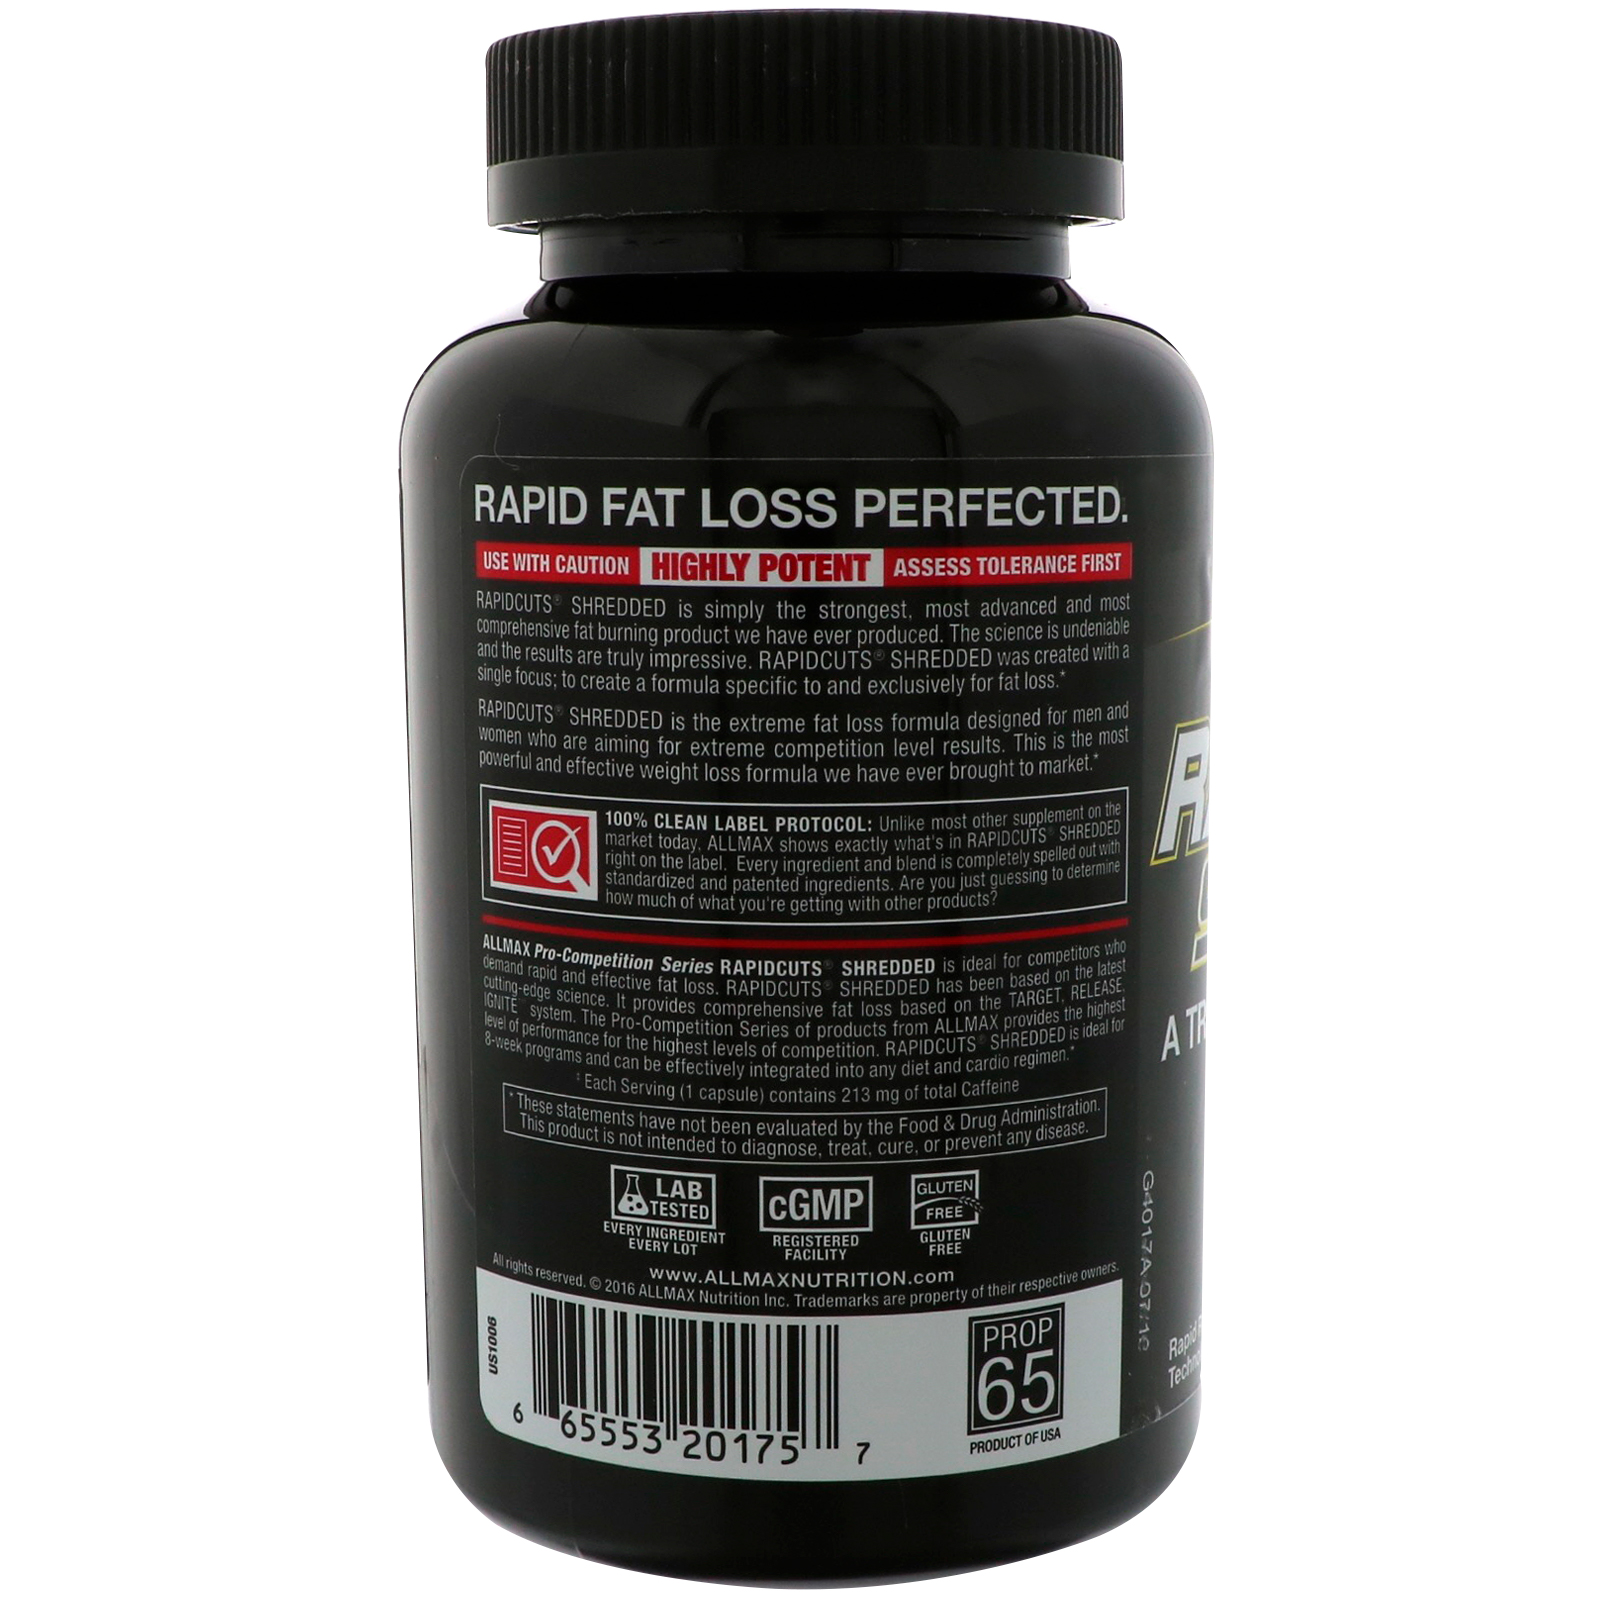 Garcinia tablets weight loss photo 7